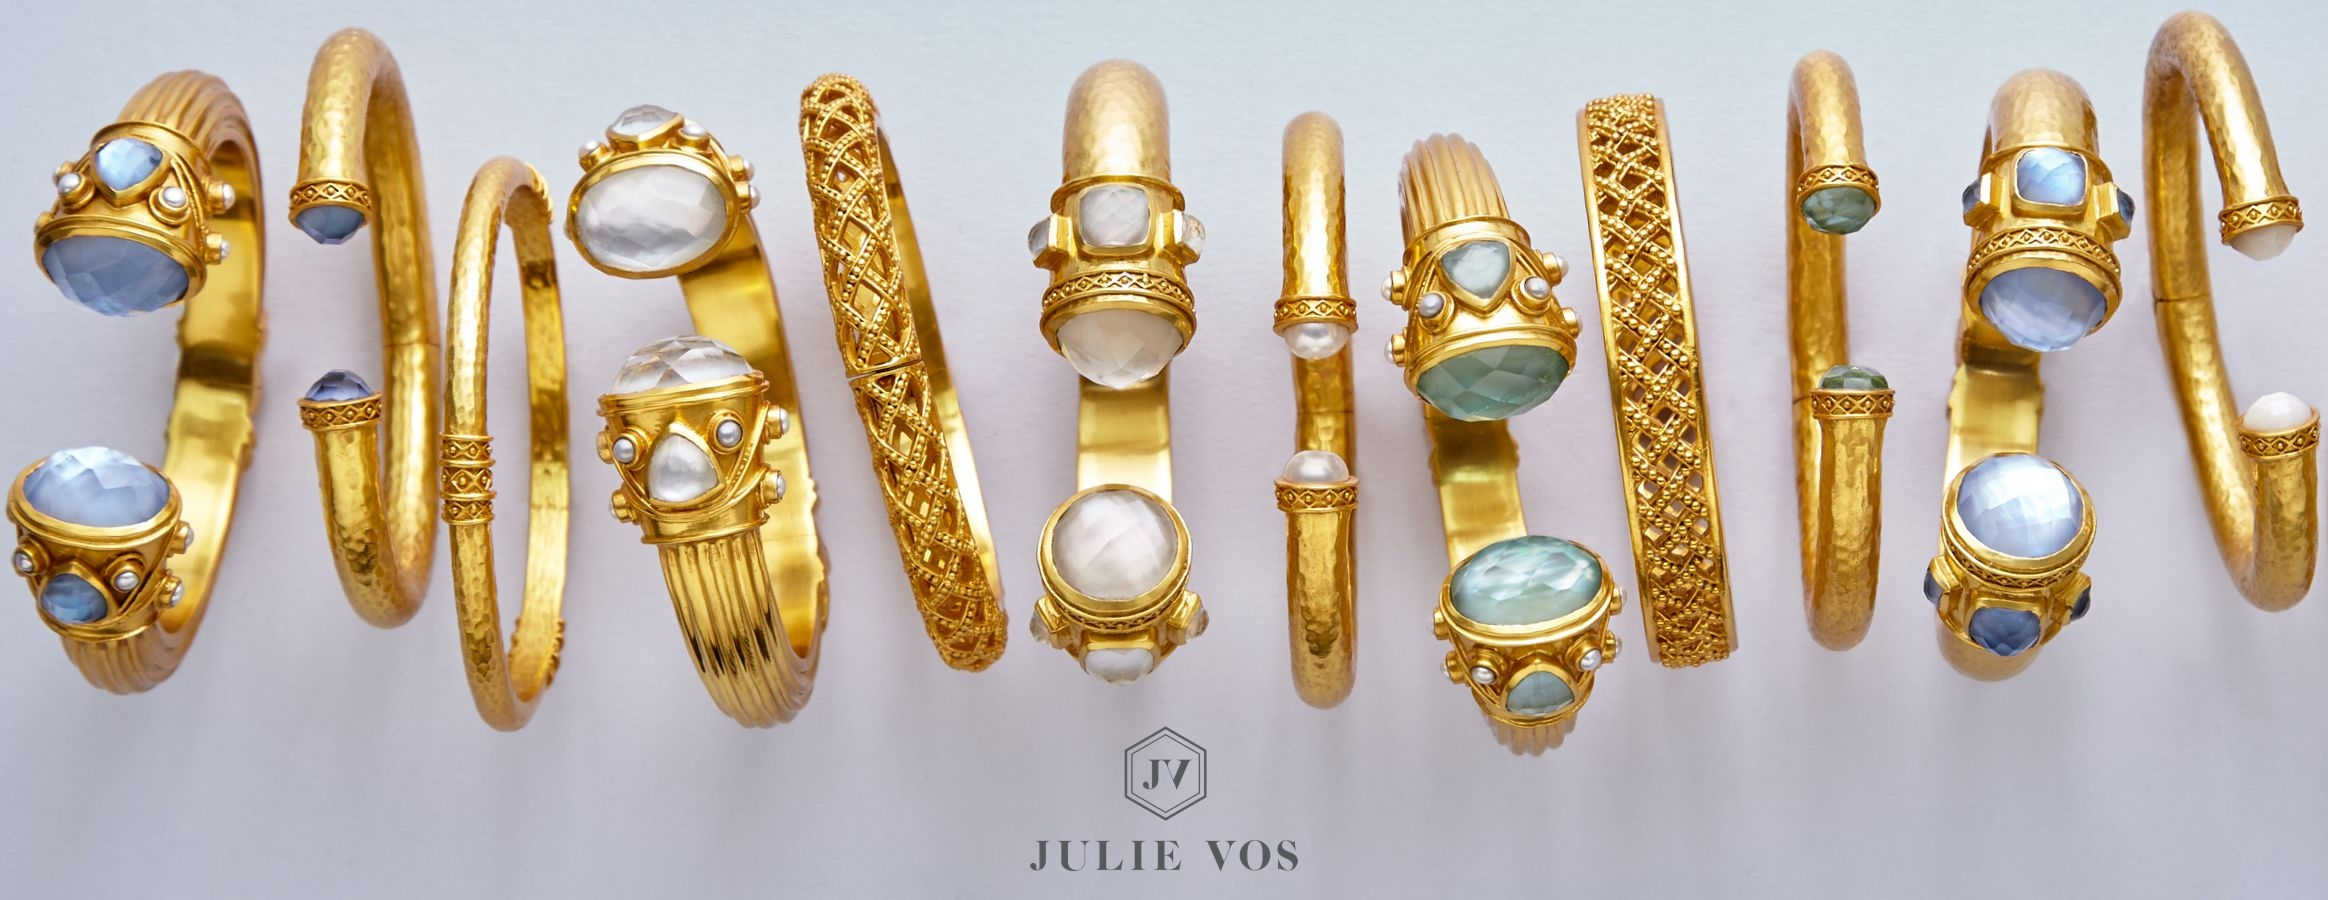 Kettermans Jewelers Julie Vos